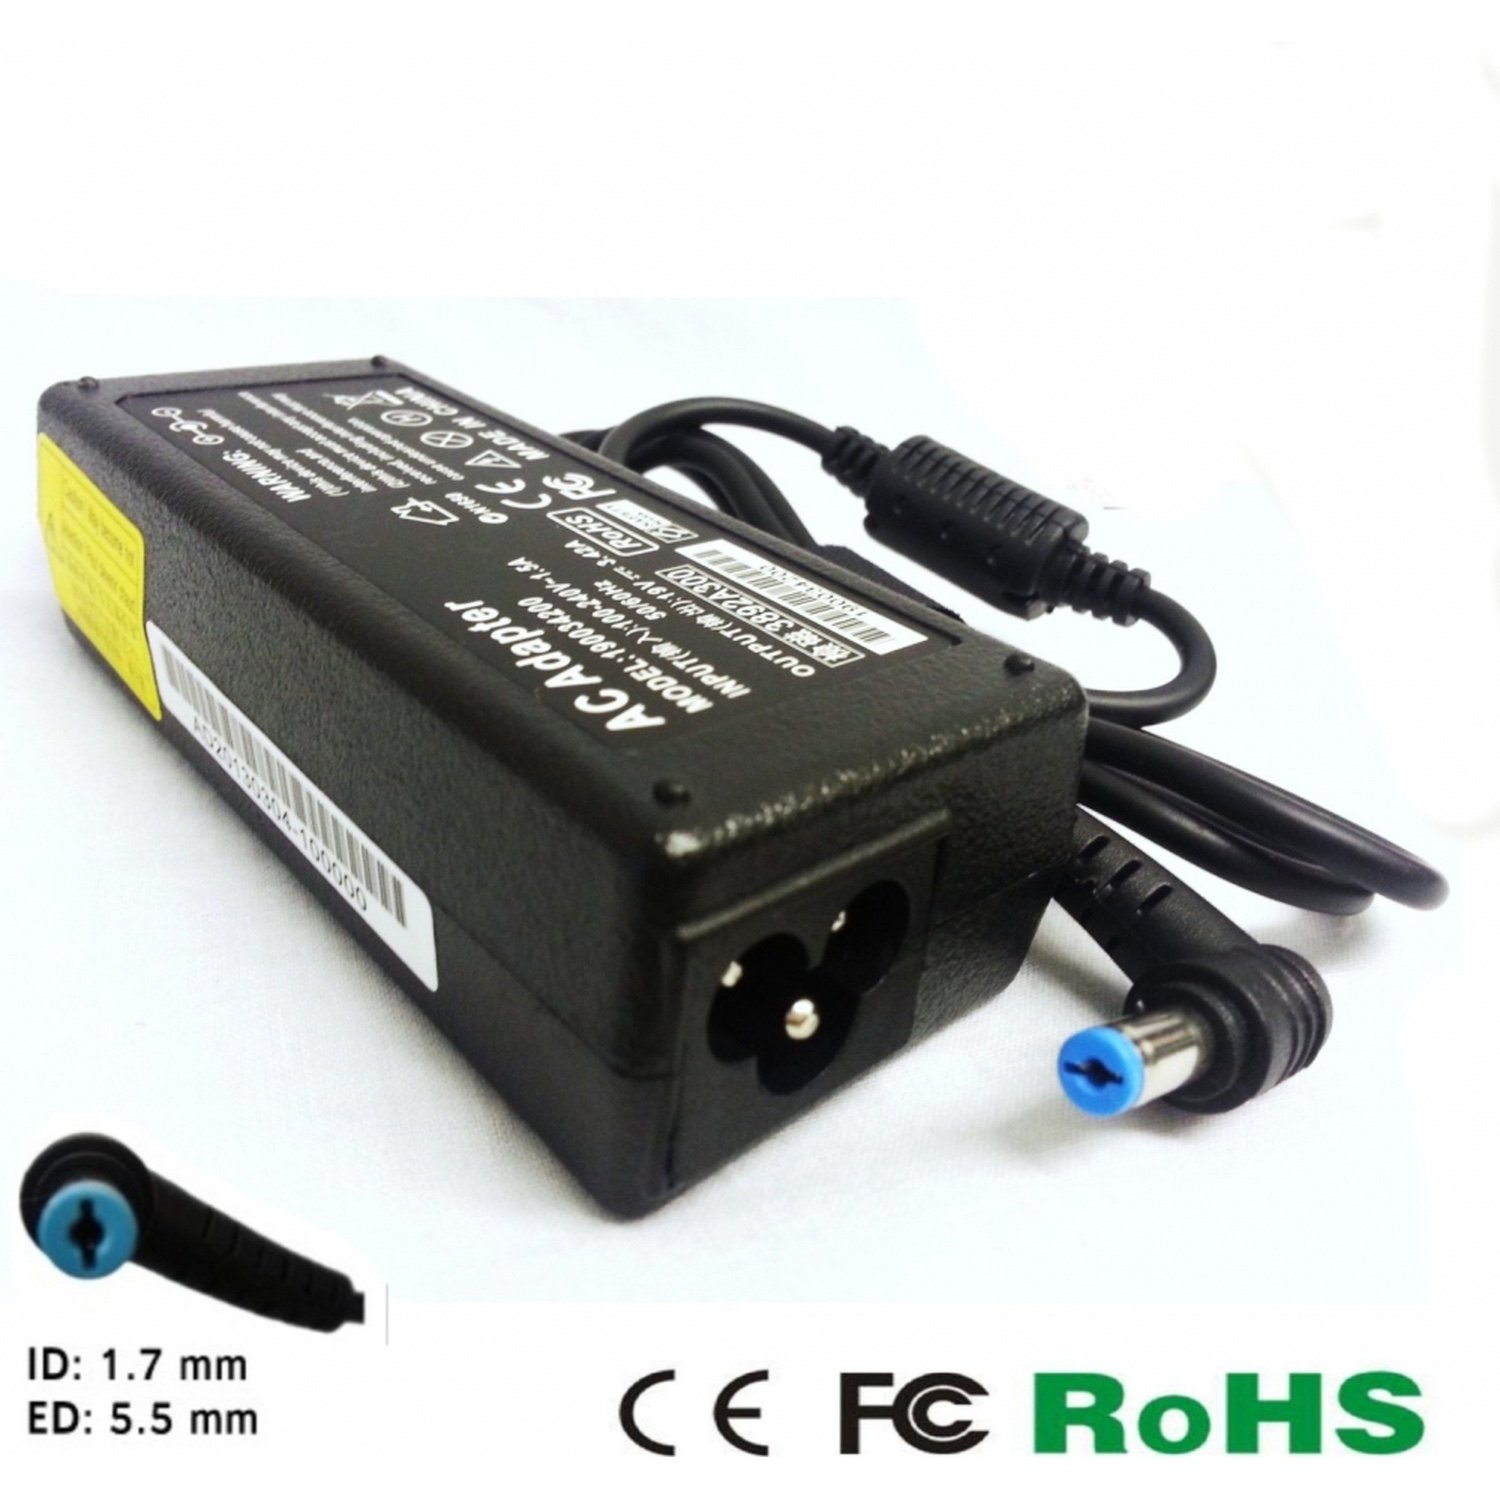 Replacement Acer 65W AC Adapter 19V 3.42A 5.5mm X 1.7mm replacement acer 65w ac adapter 19v 3 42a